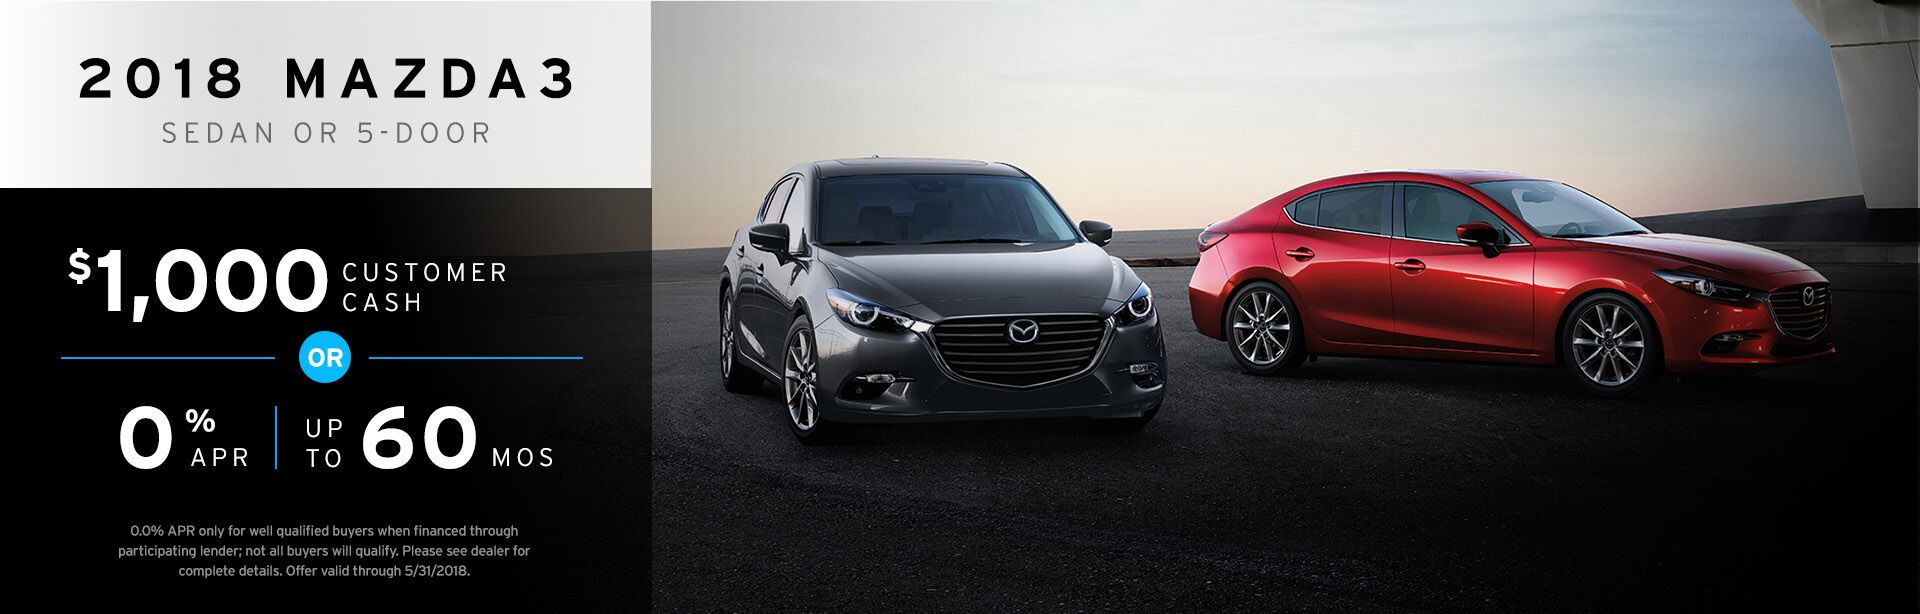 2018 Mazda3 May Offer